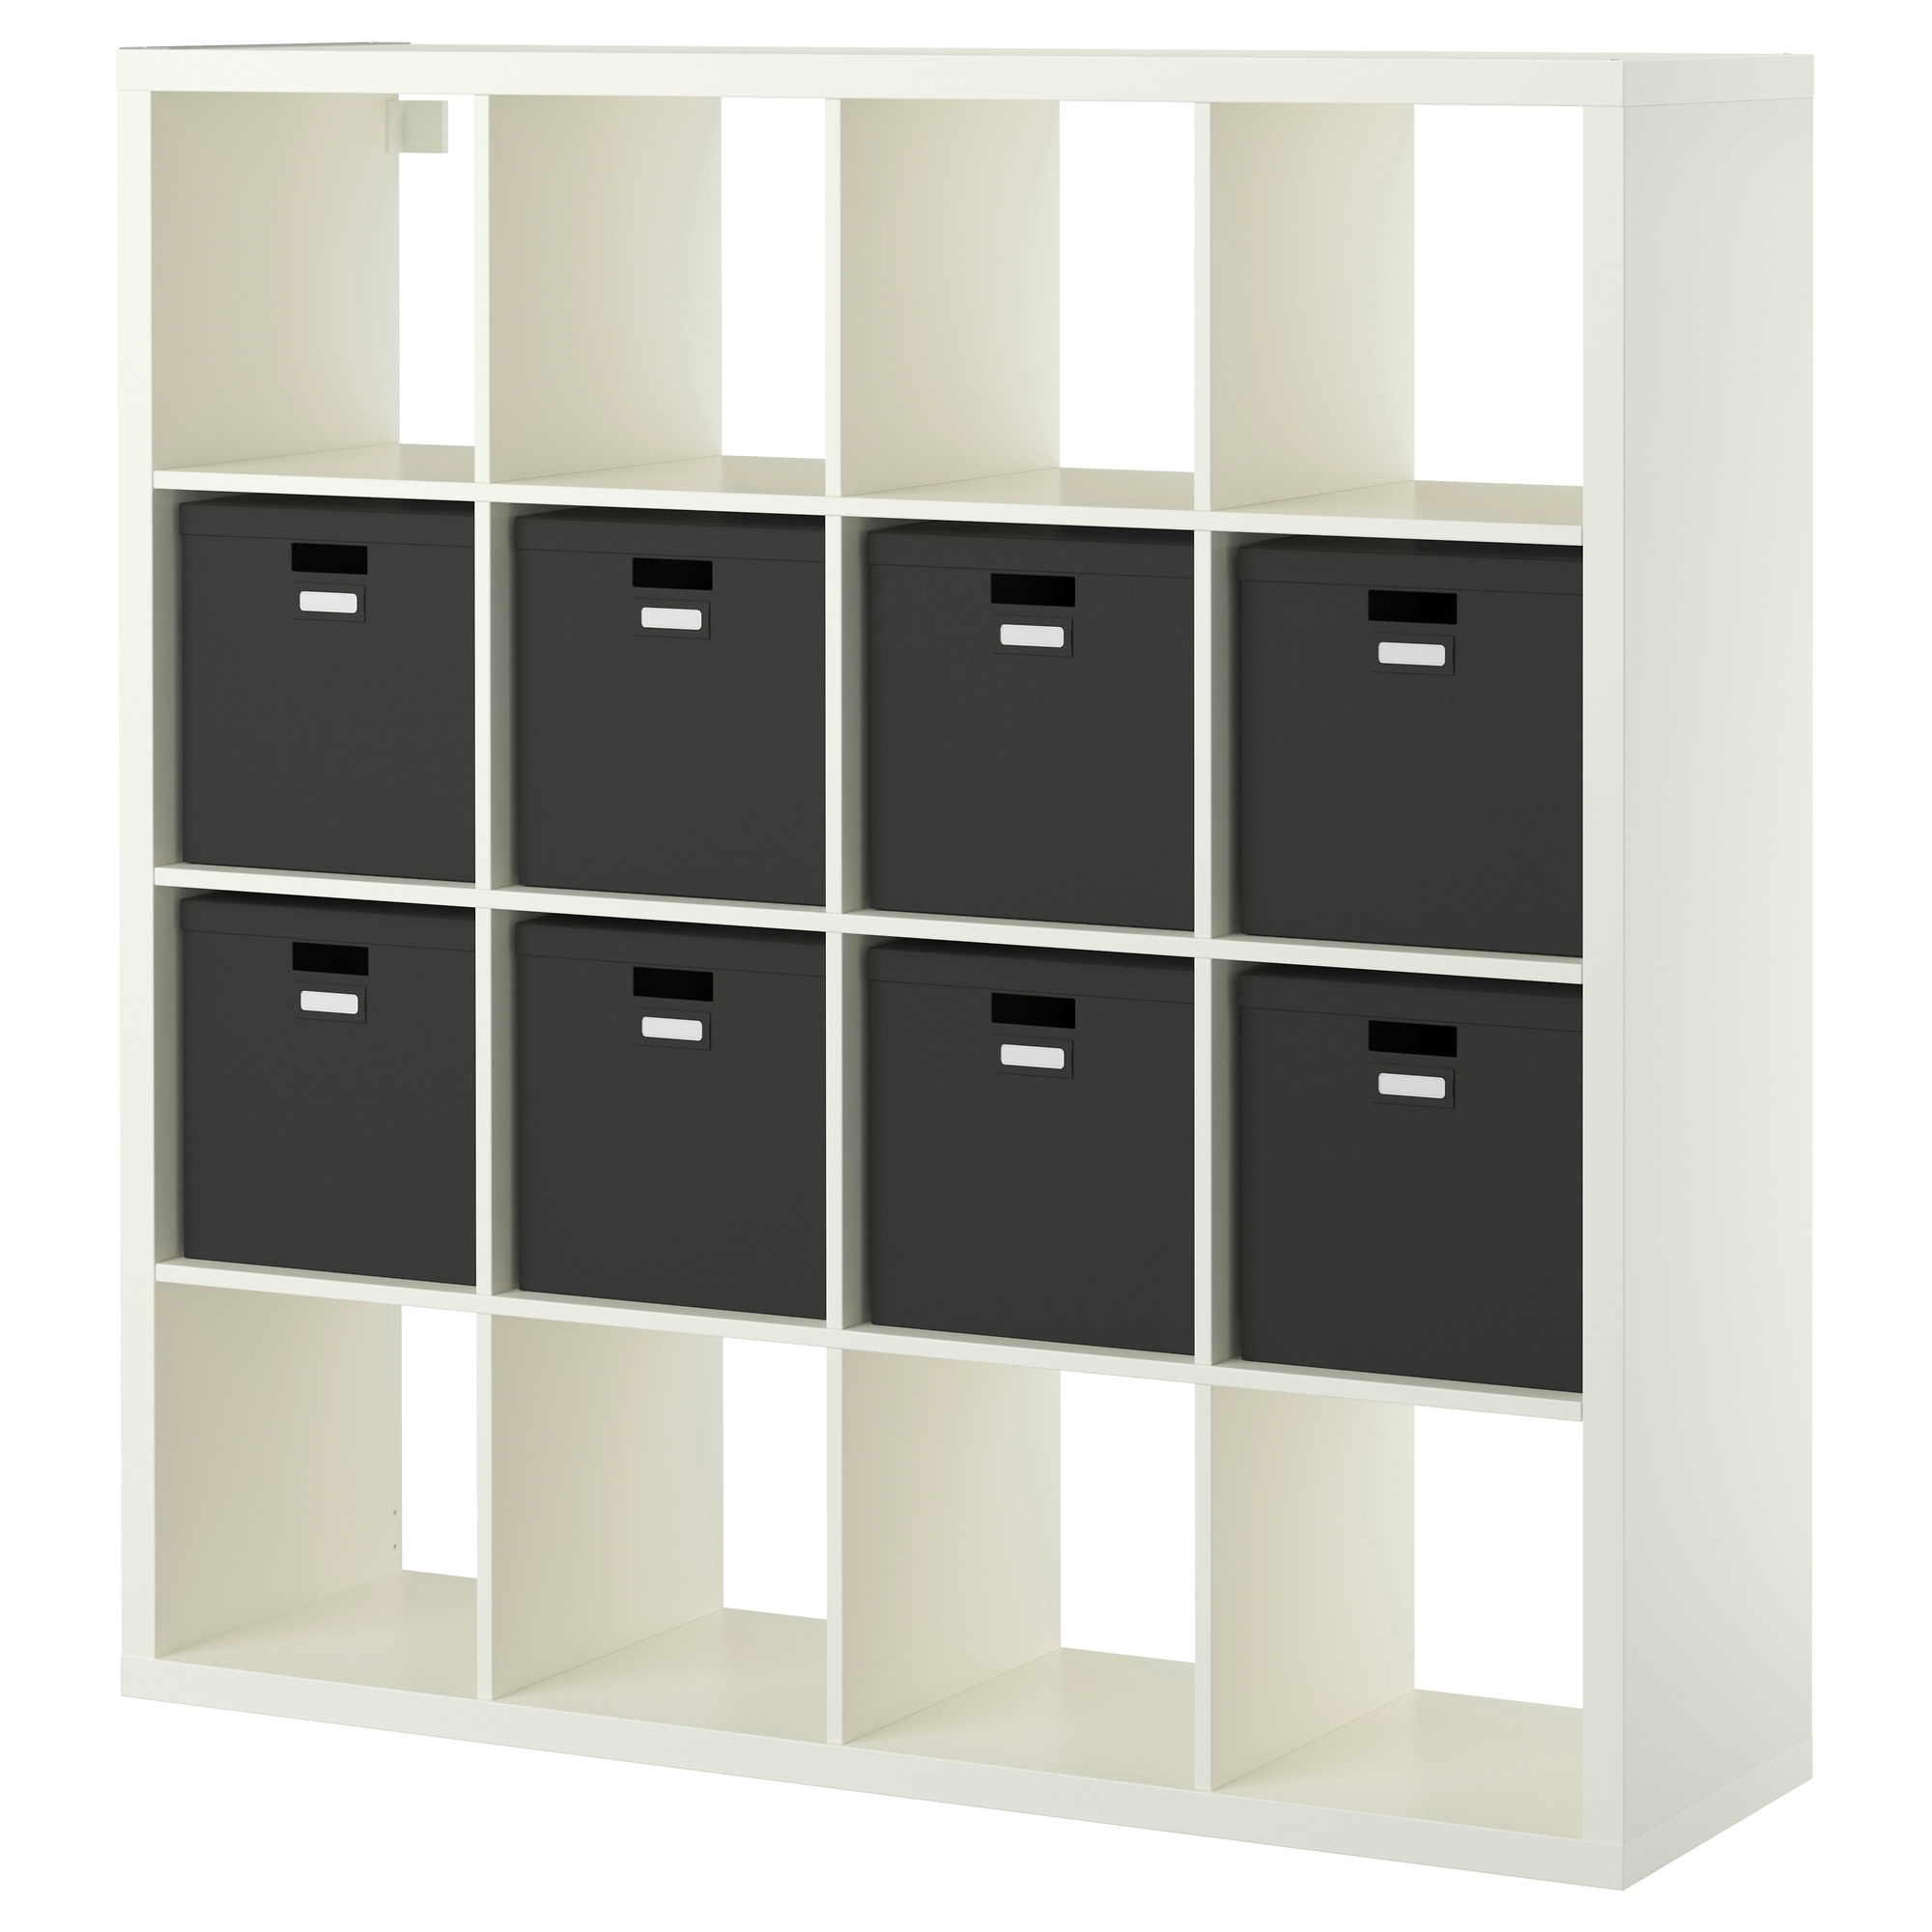 Shelves & Shelving Units - IKEA